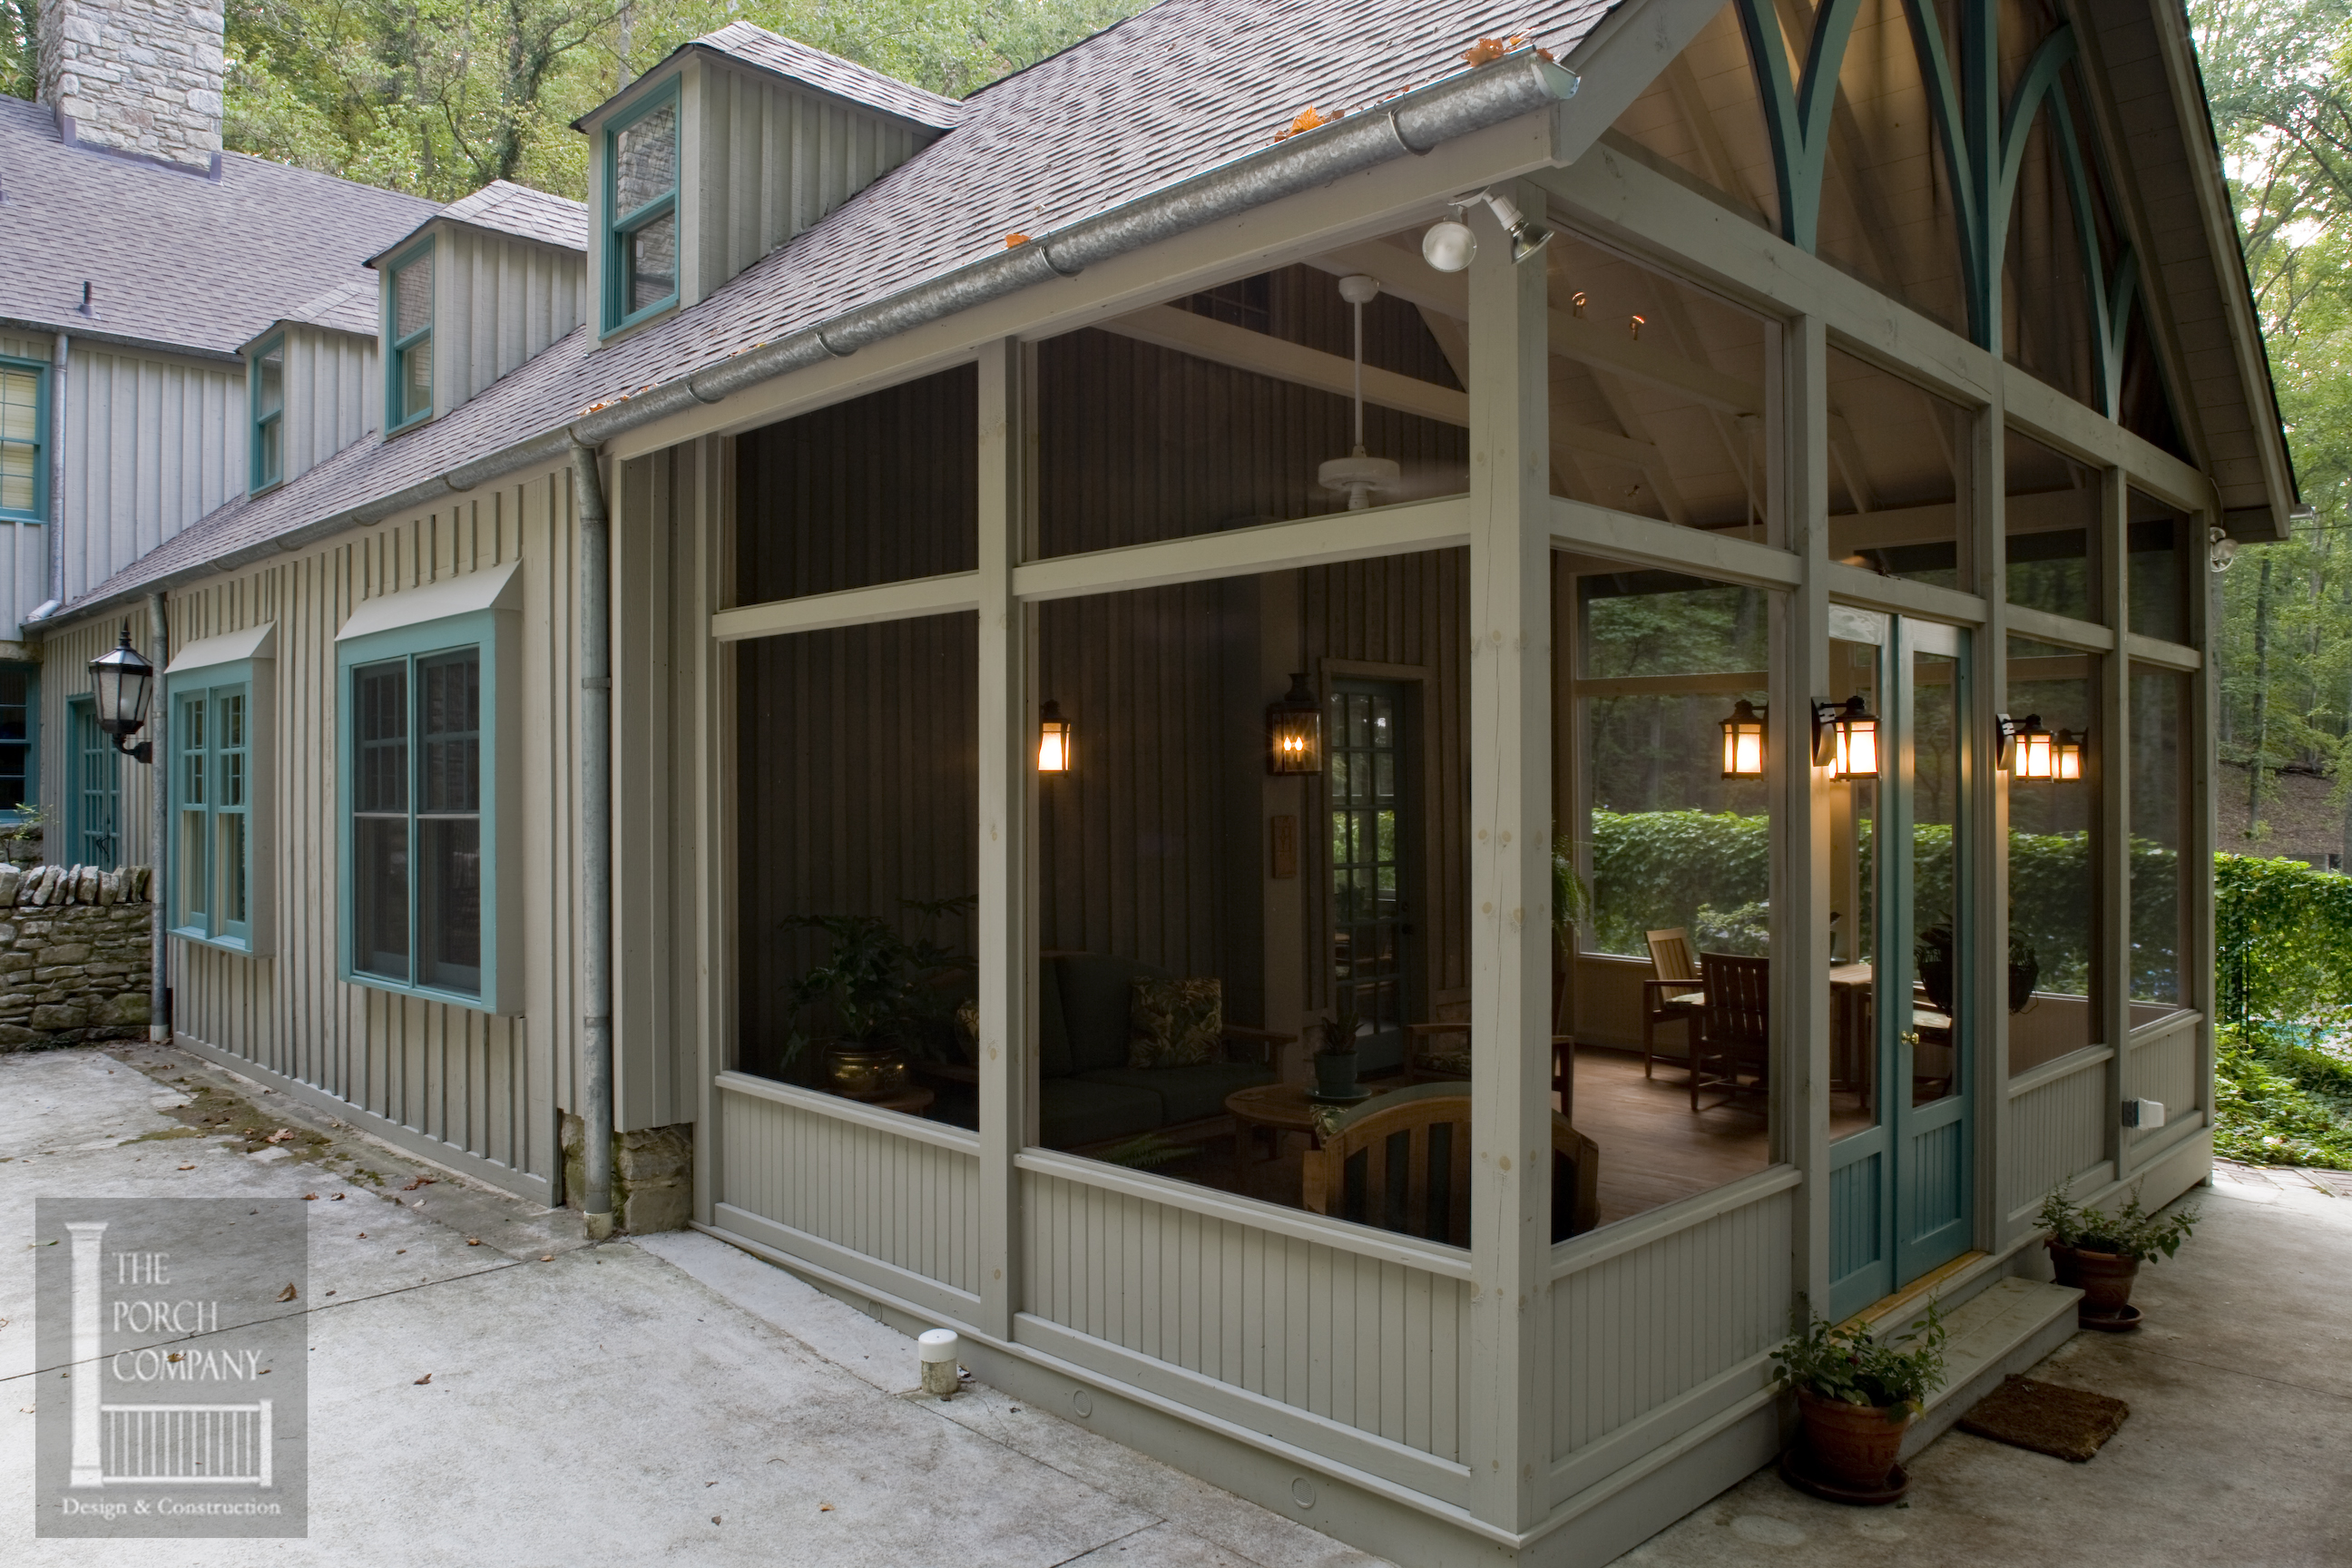 Choosing the right porch roof style - The Porch CompanyThe Porch Company